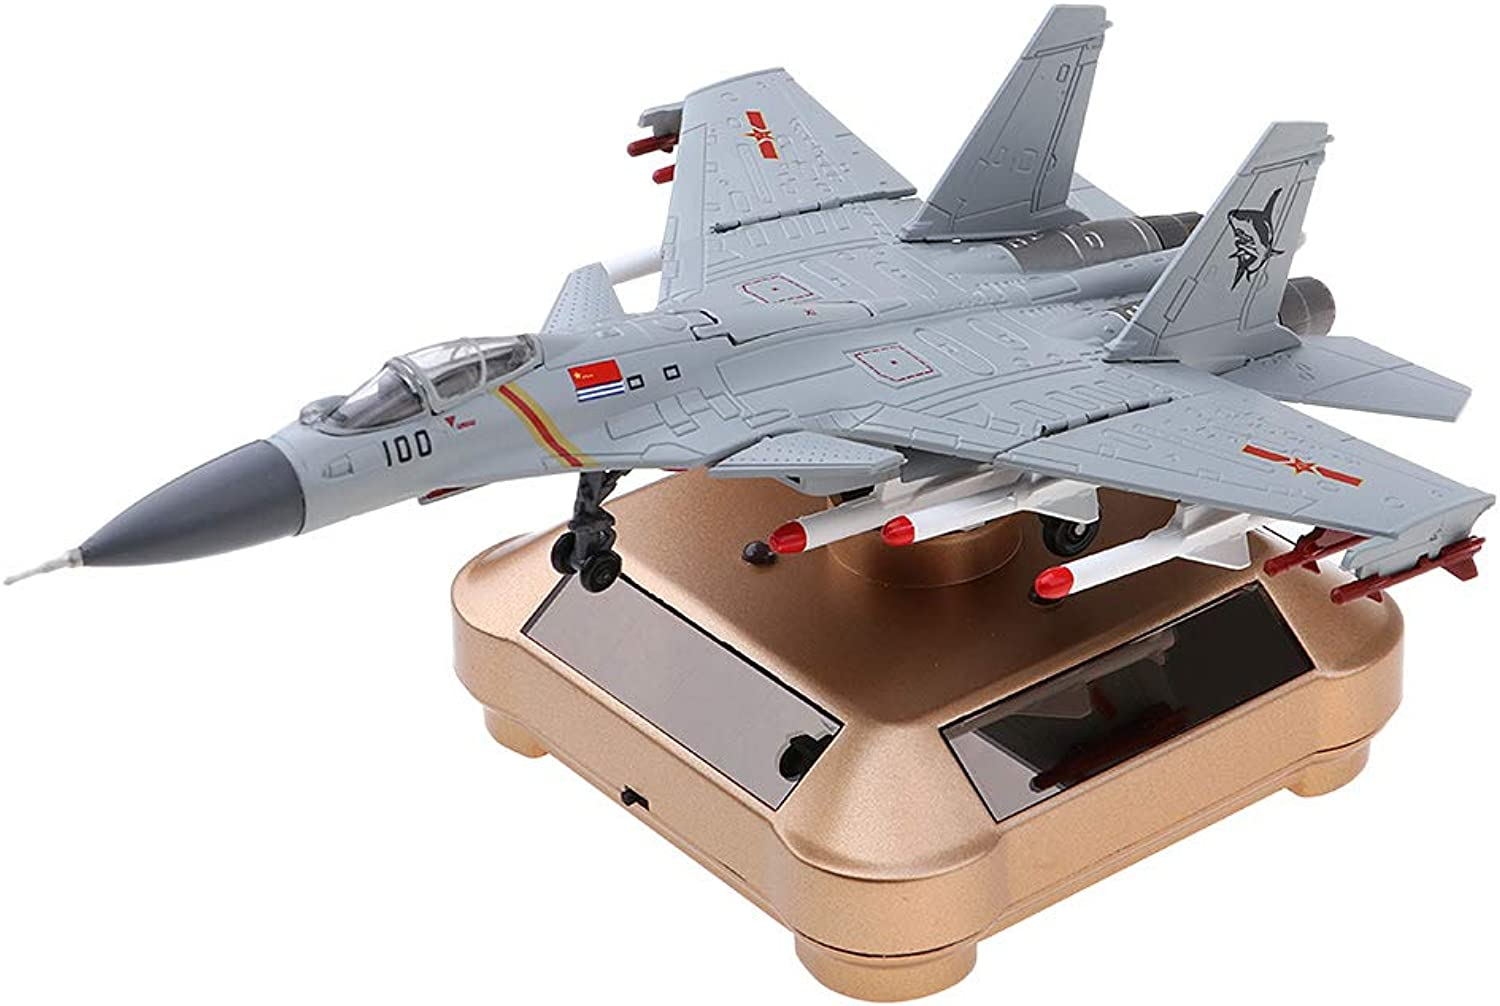 Flameer Collectibles J15 Shipborne Fighter Alloy Model W redate Stand Home Ornament